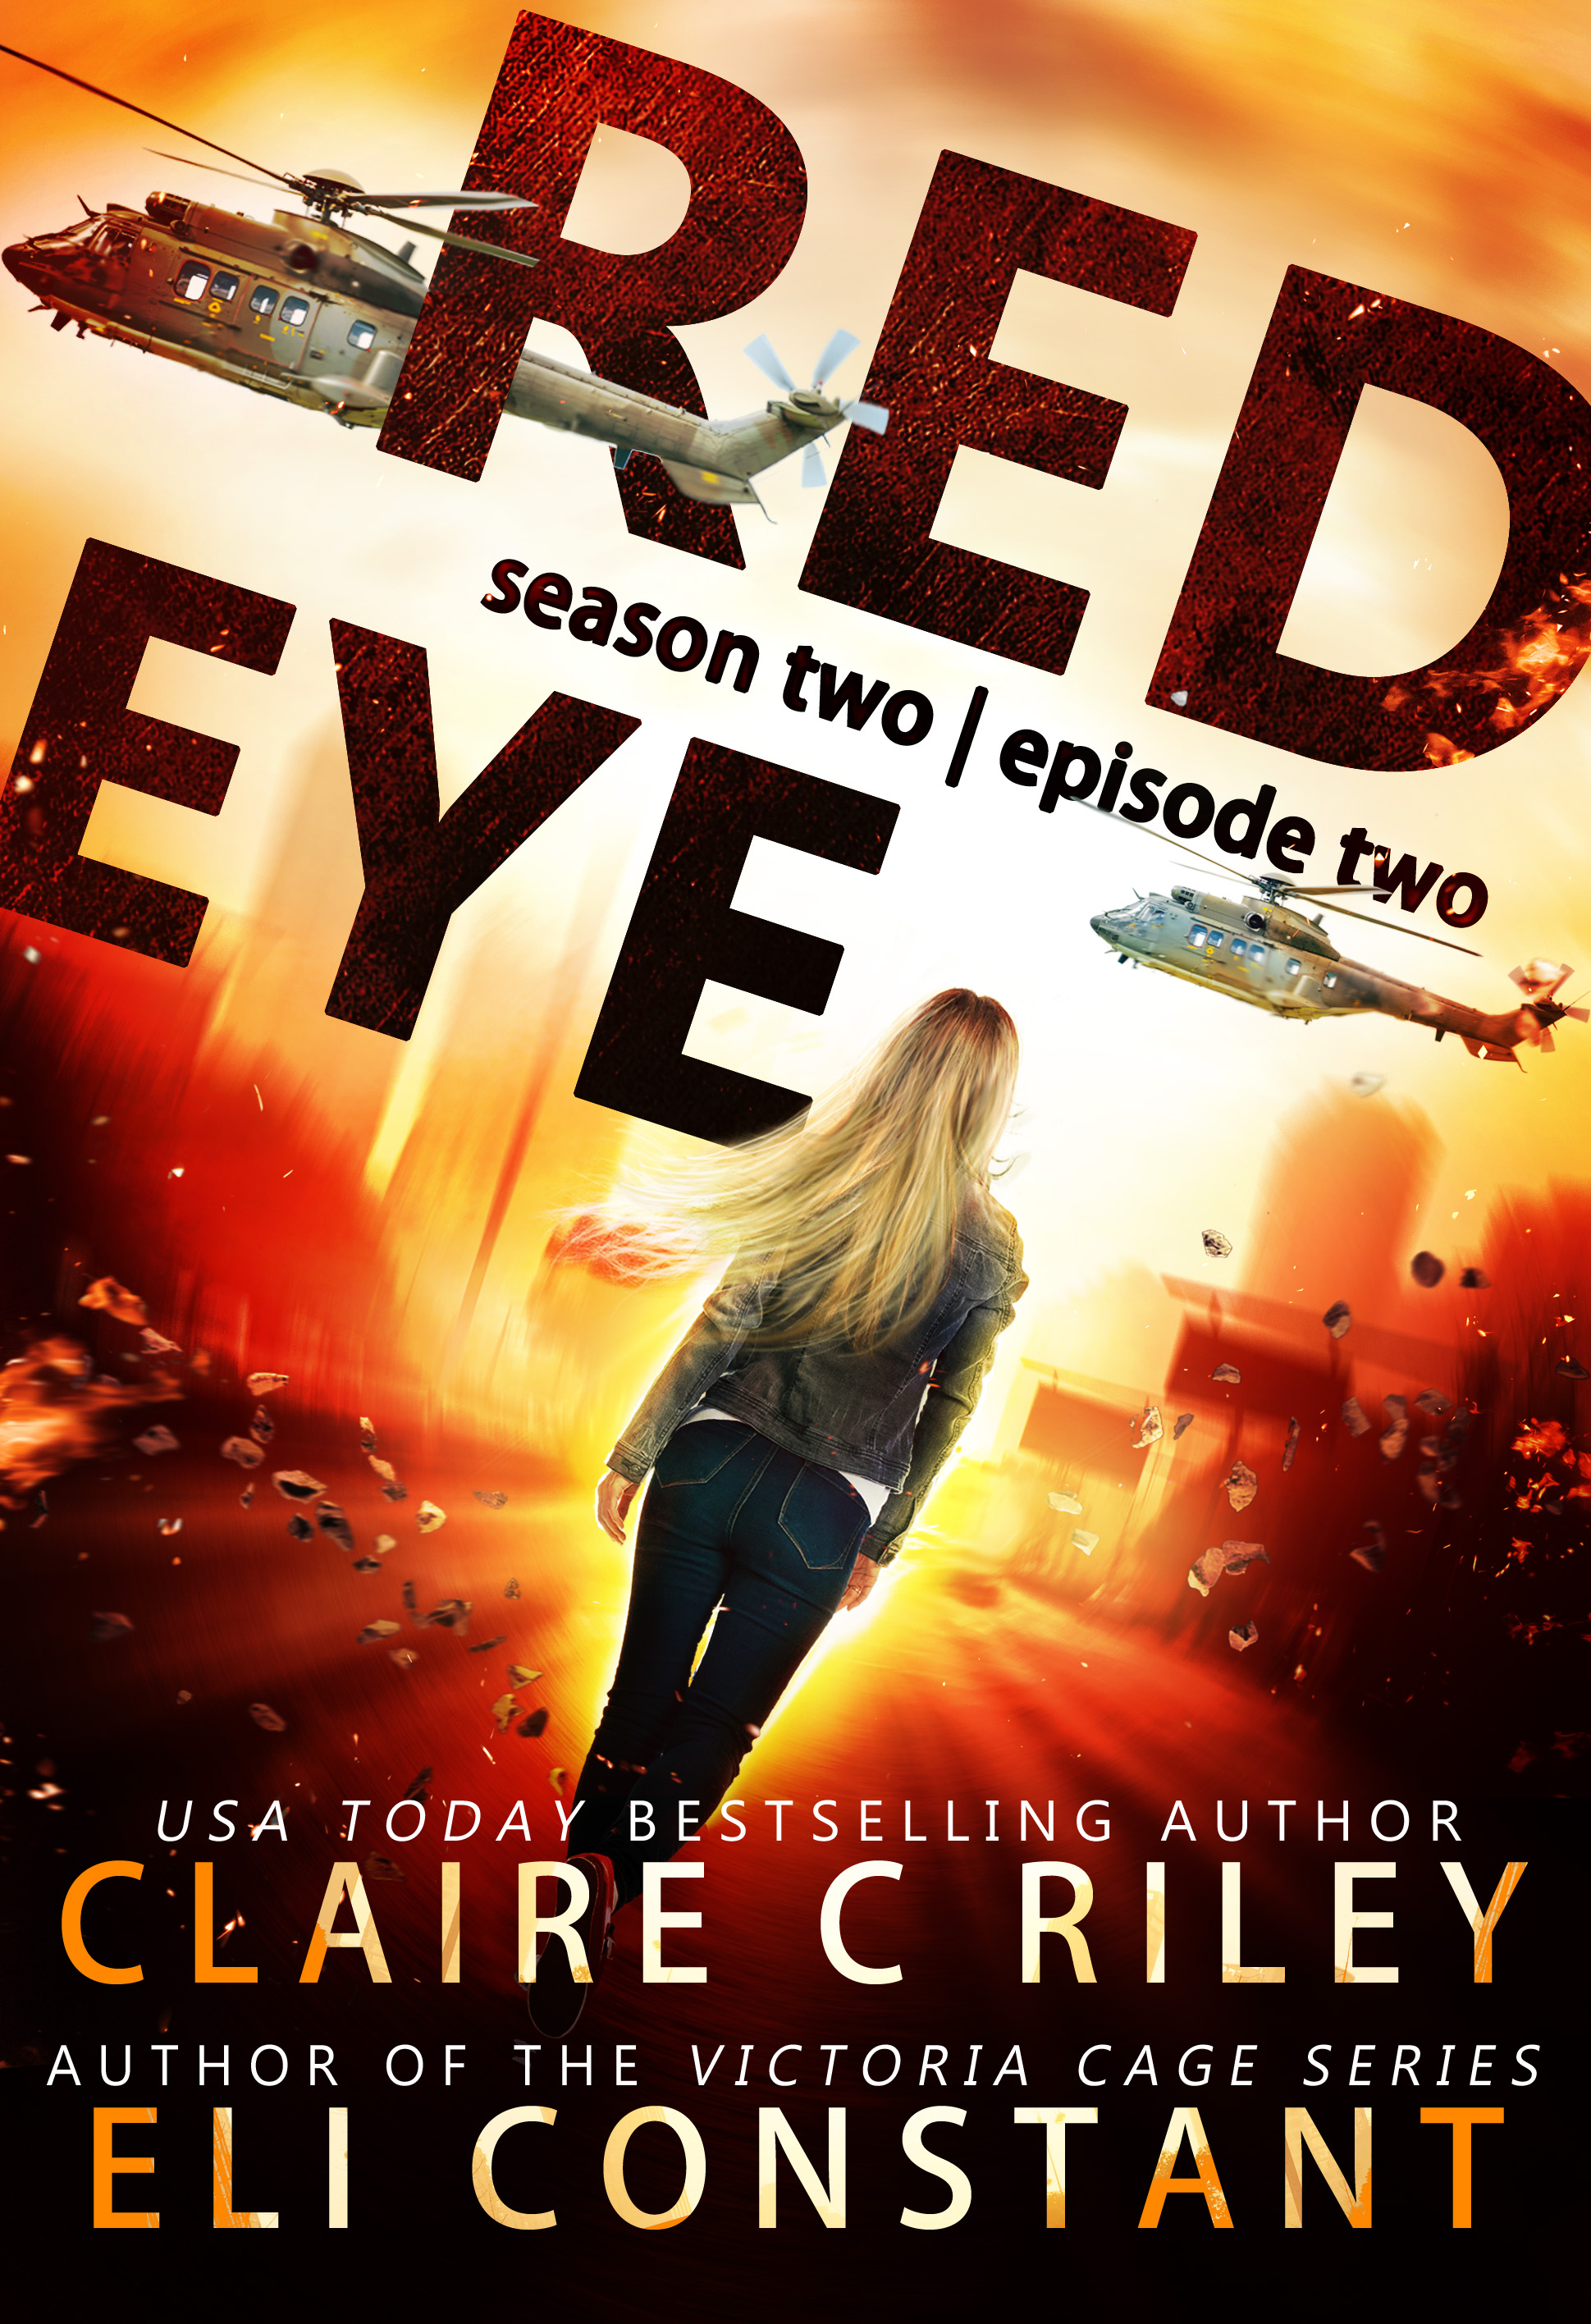 Red Eye The Armageddon Series, Season 2, Episode 2